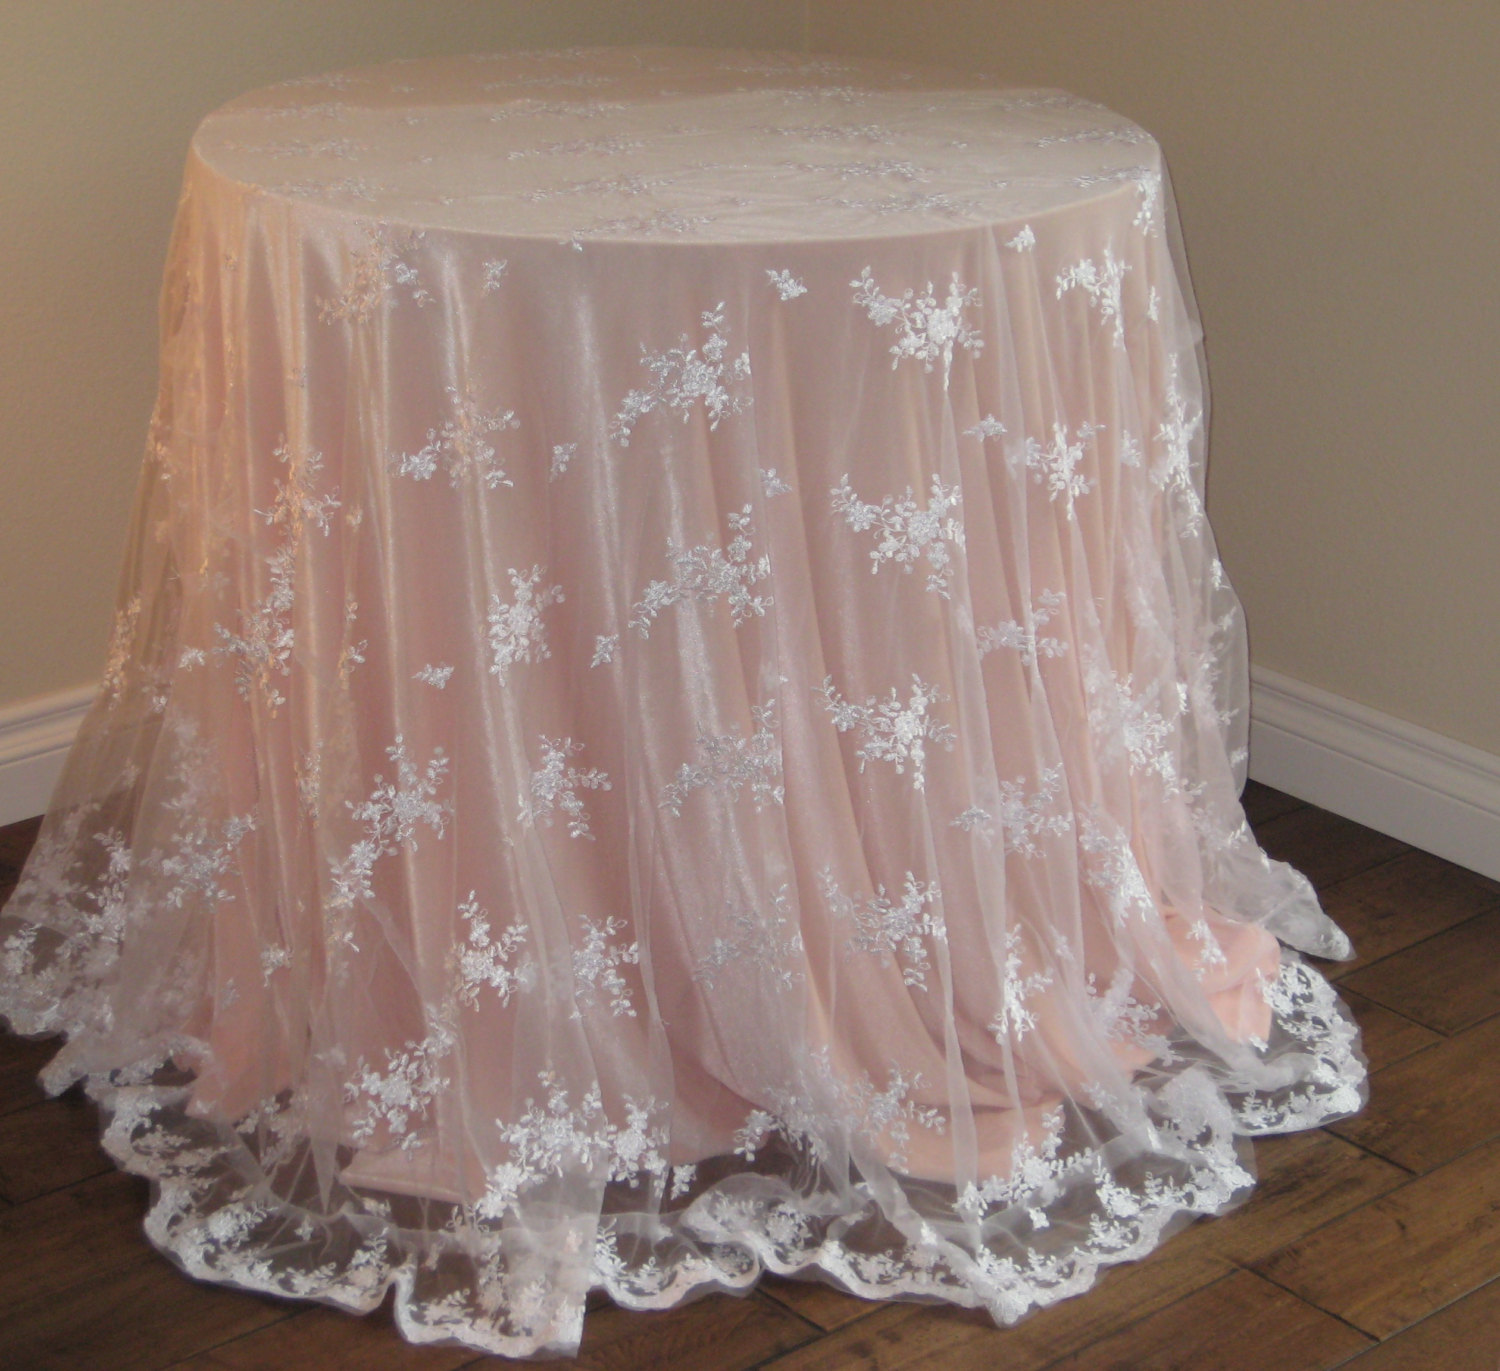 Oval Table Cloths | Lace Tablecloths | Oversized Tablecloths